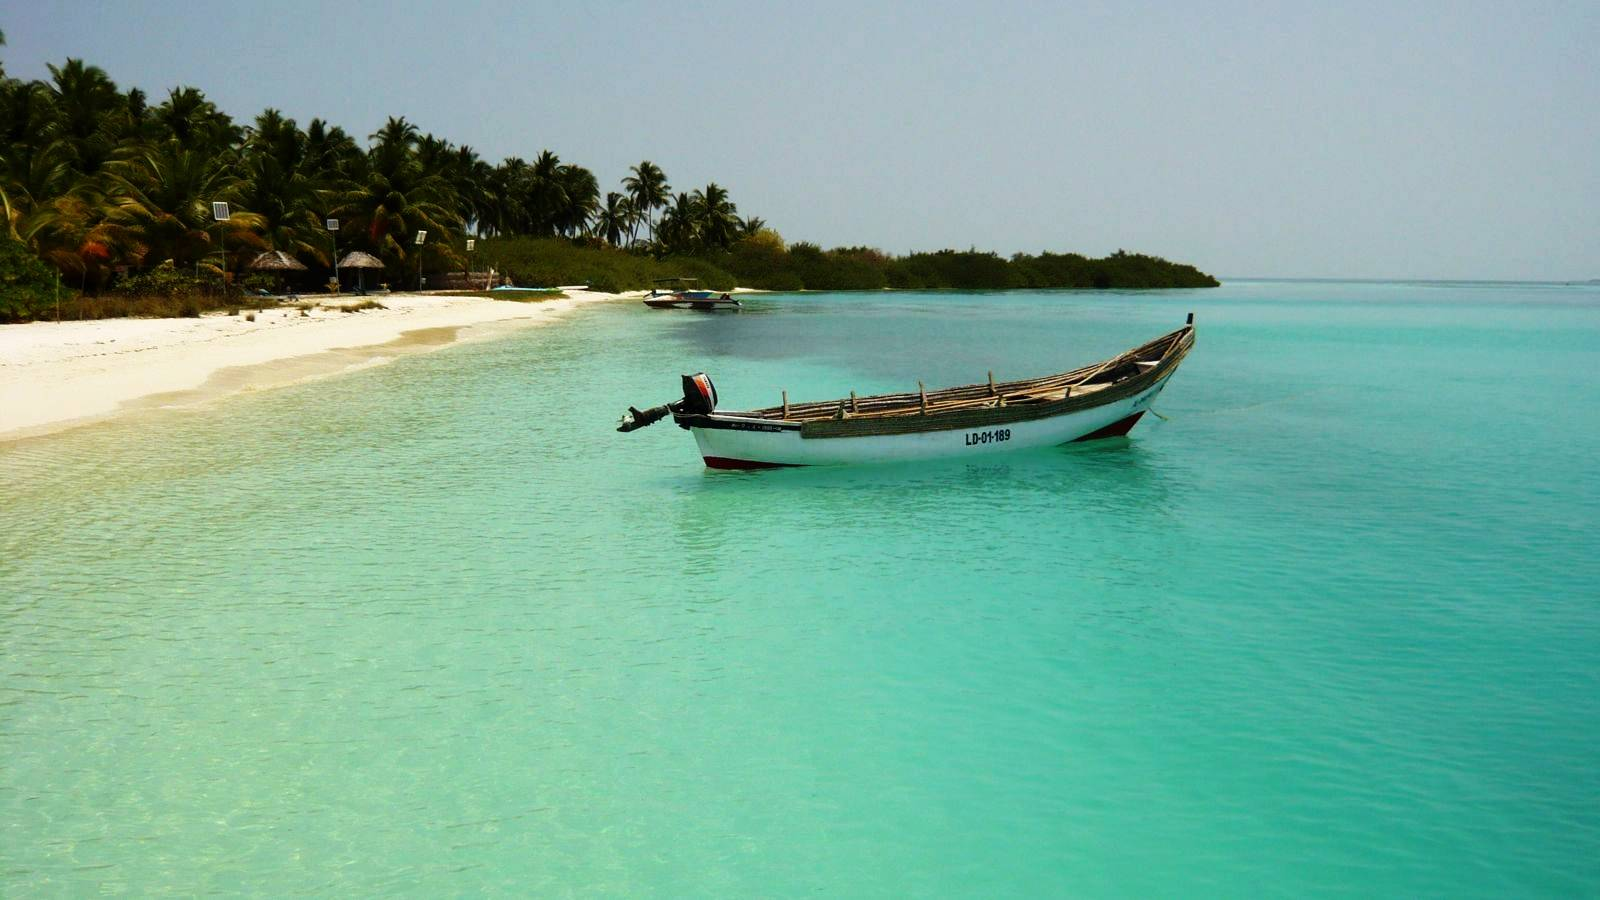 Bangaram-Beach-in-Lakshadweep-Islands.jpg